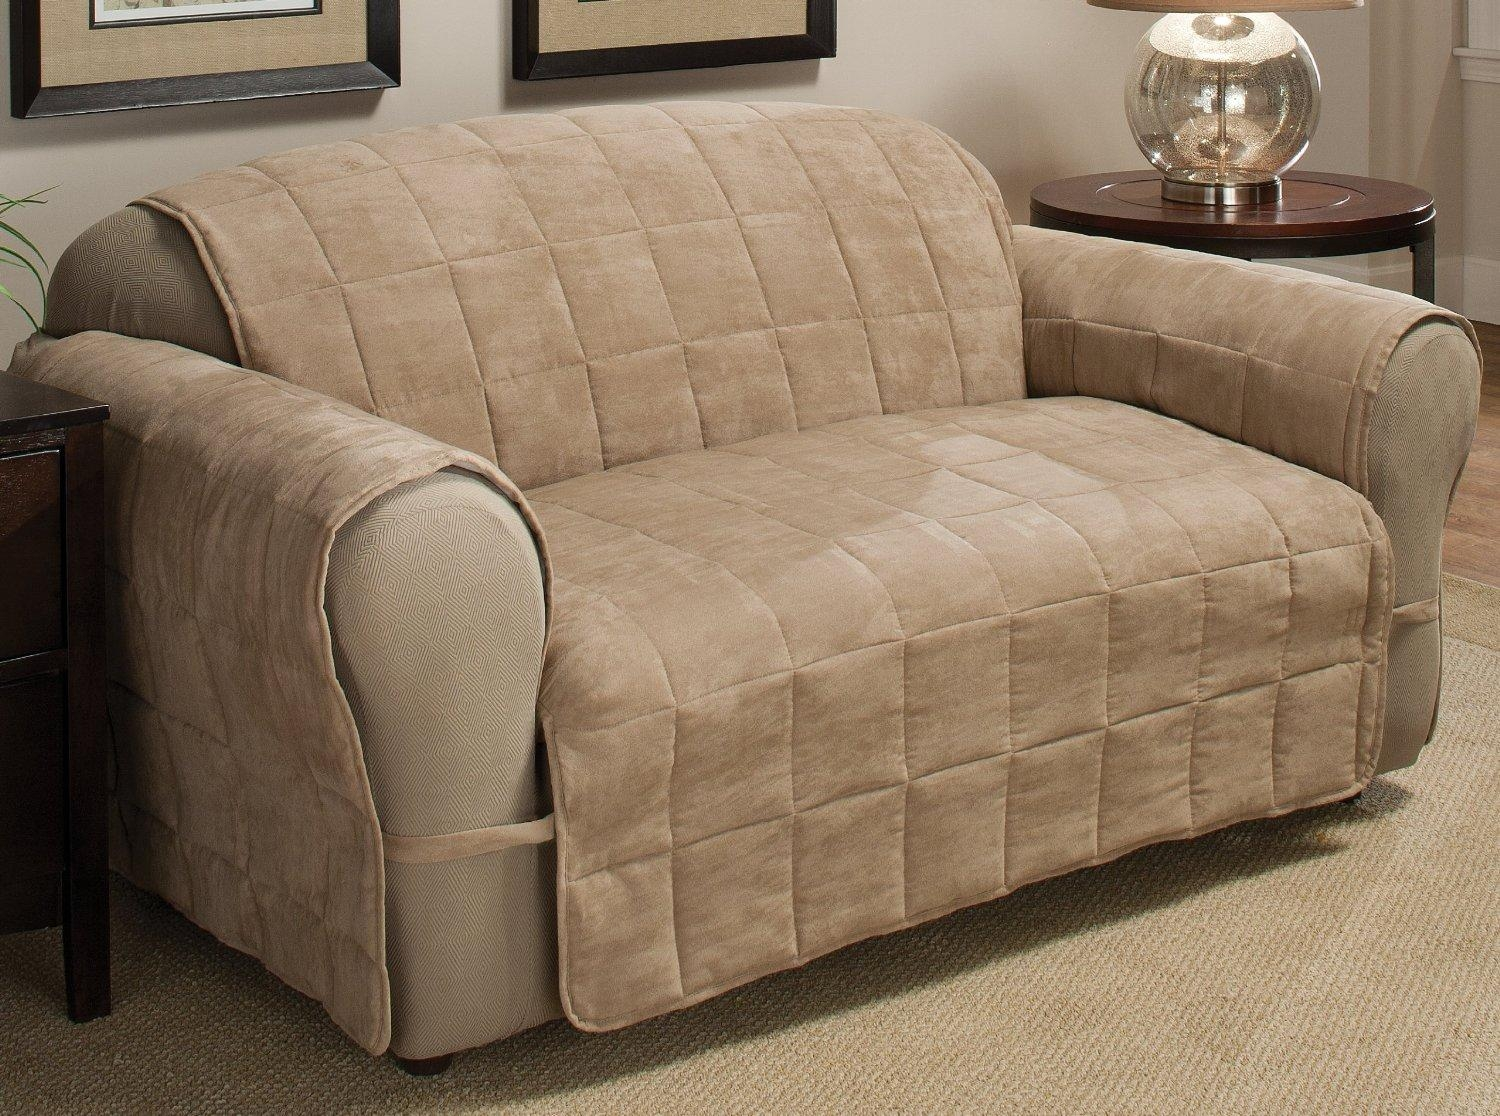 Sofas Center : Pet Furniture Covers For Sofas Staggering Images Pertaining To Covers For Sofas And Chairs (View 5 of 20)